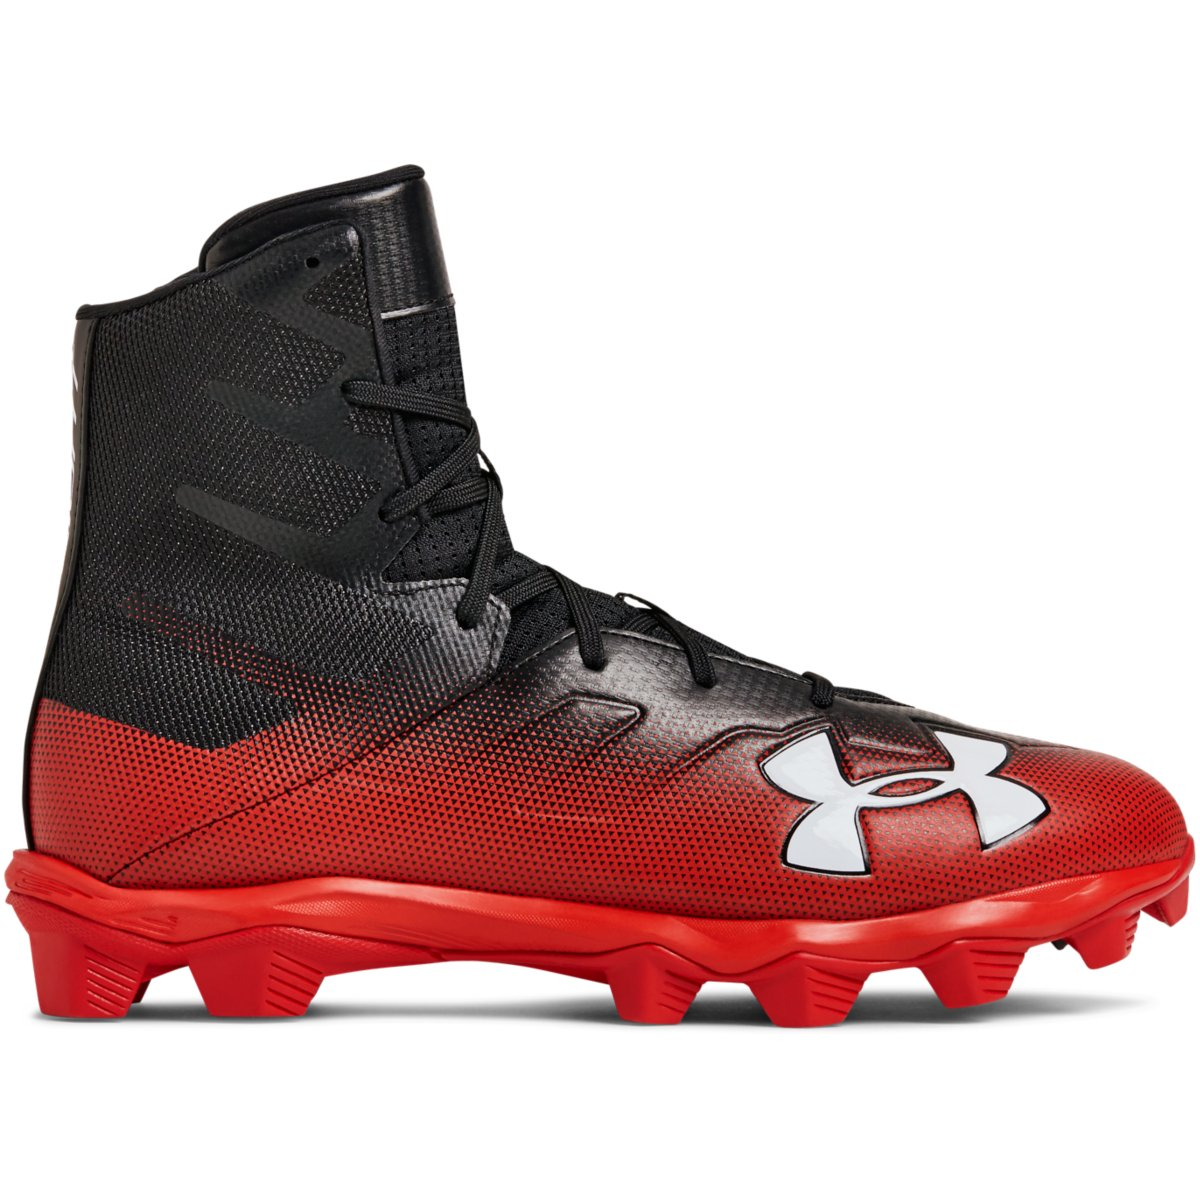 Men's Under Armour Highlight RM Football Cleats